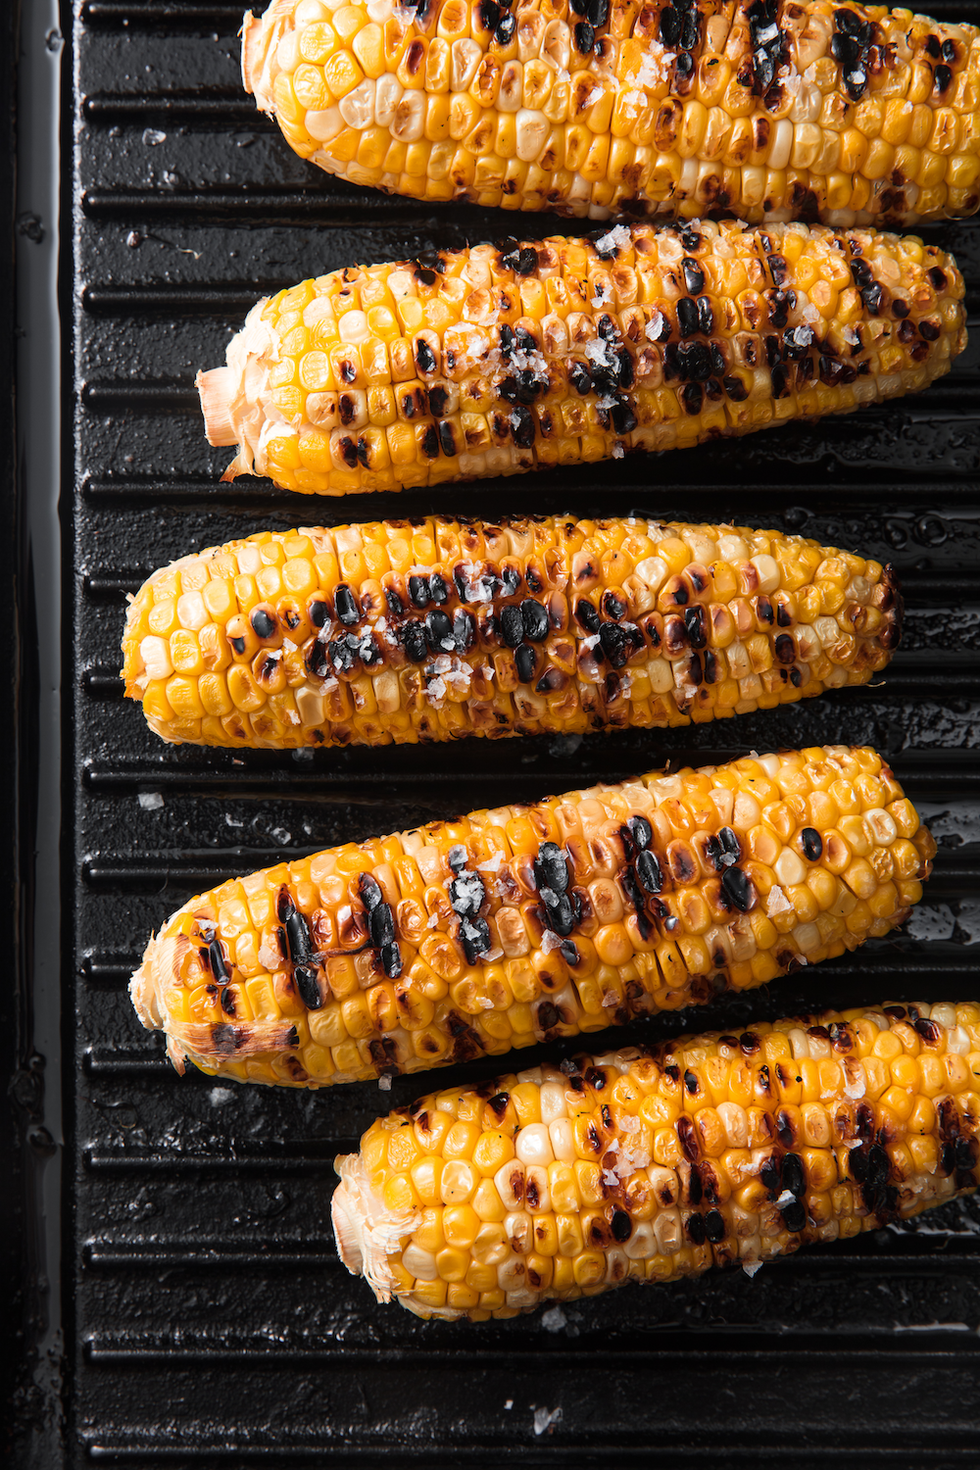 30+ vegetarian bbq recipes - grilling ideas for a vegetarian